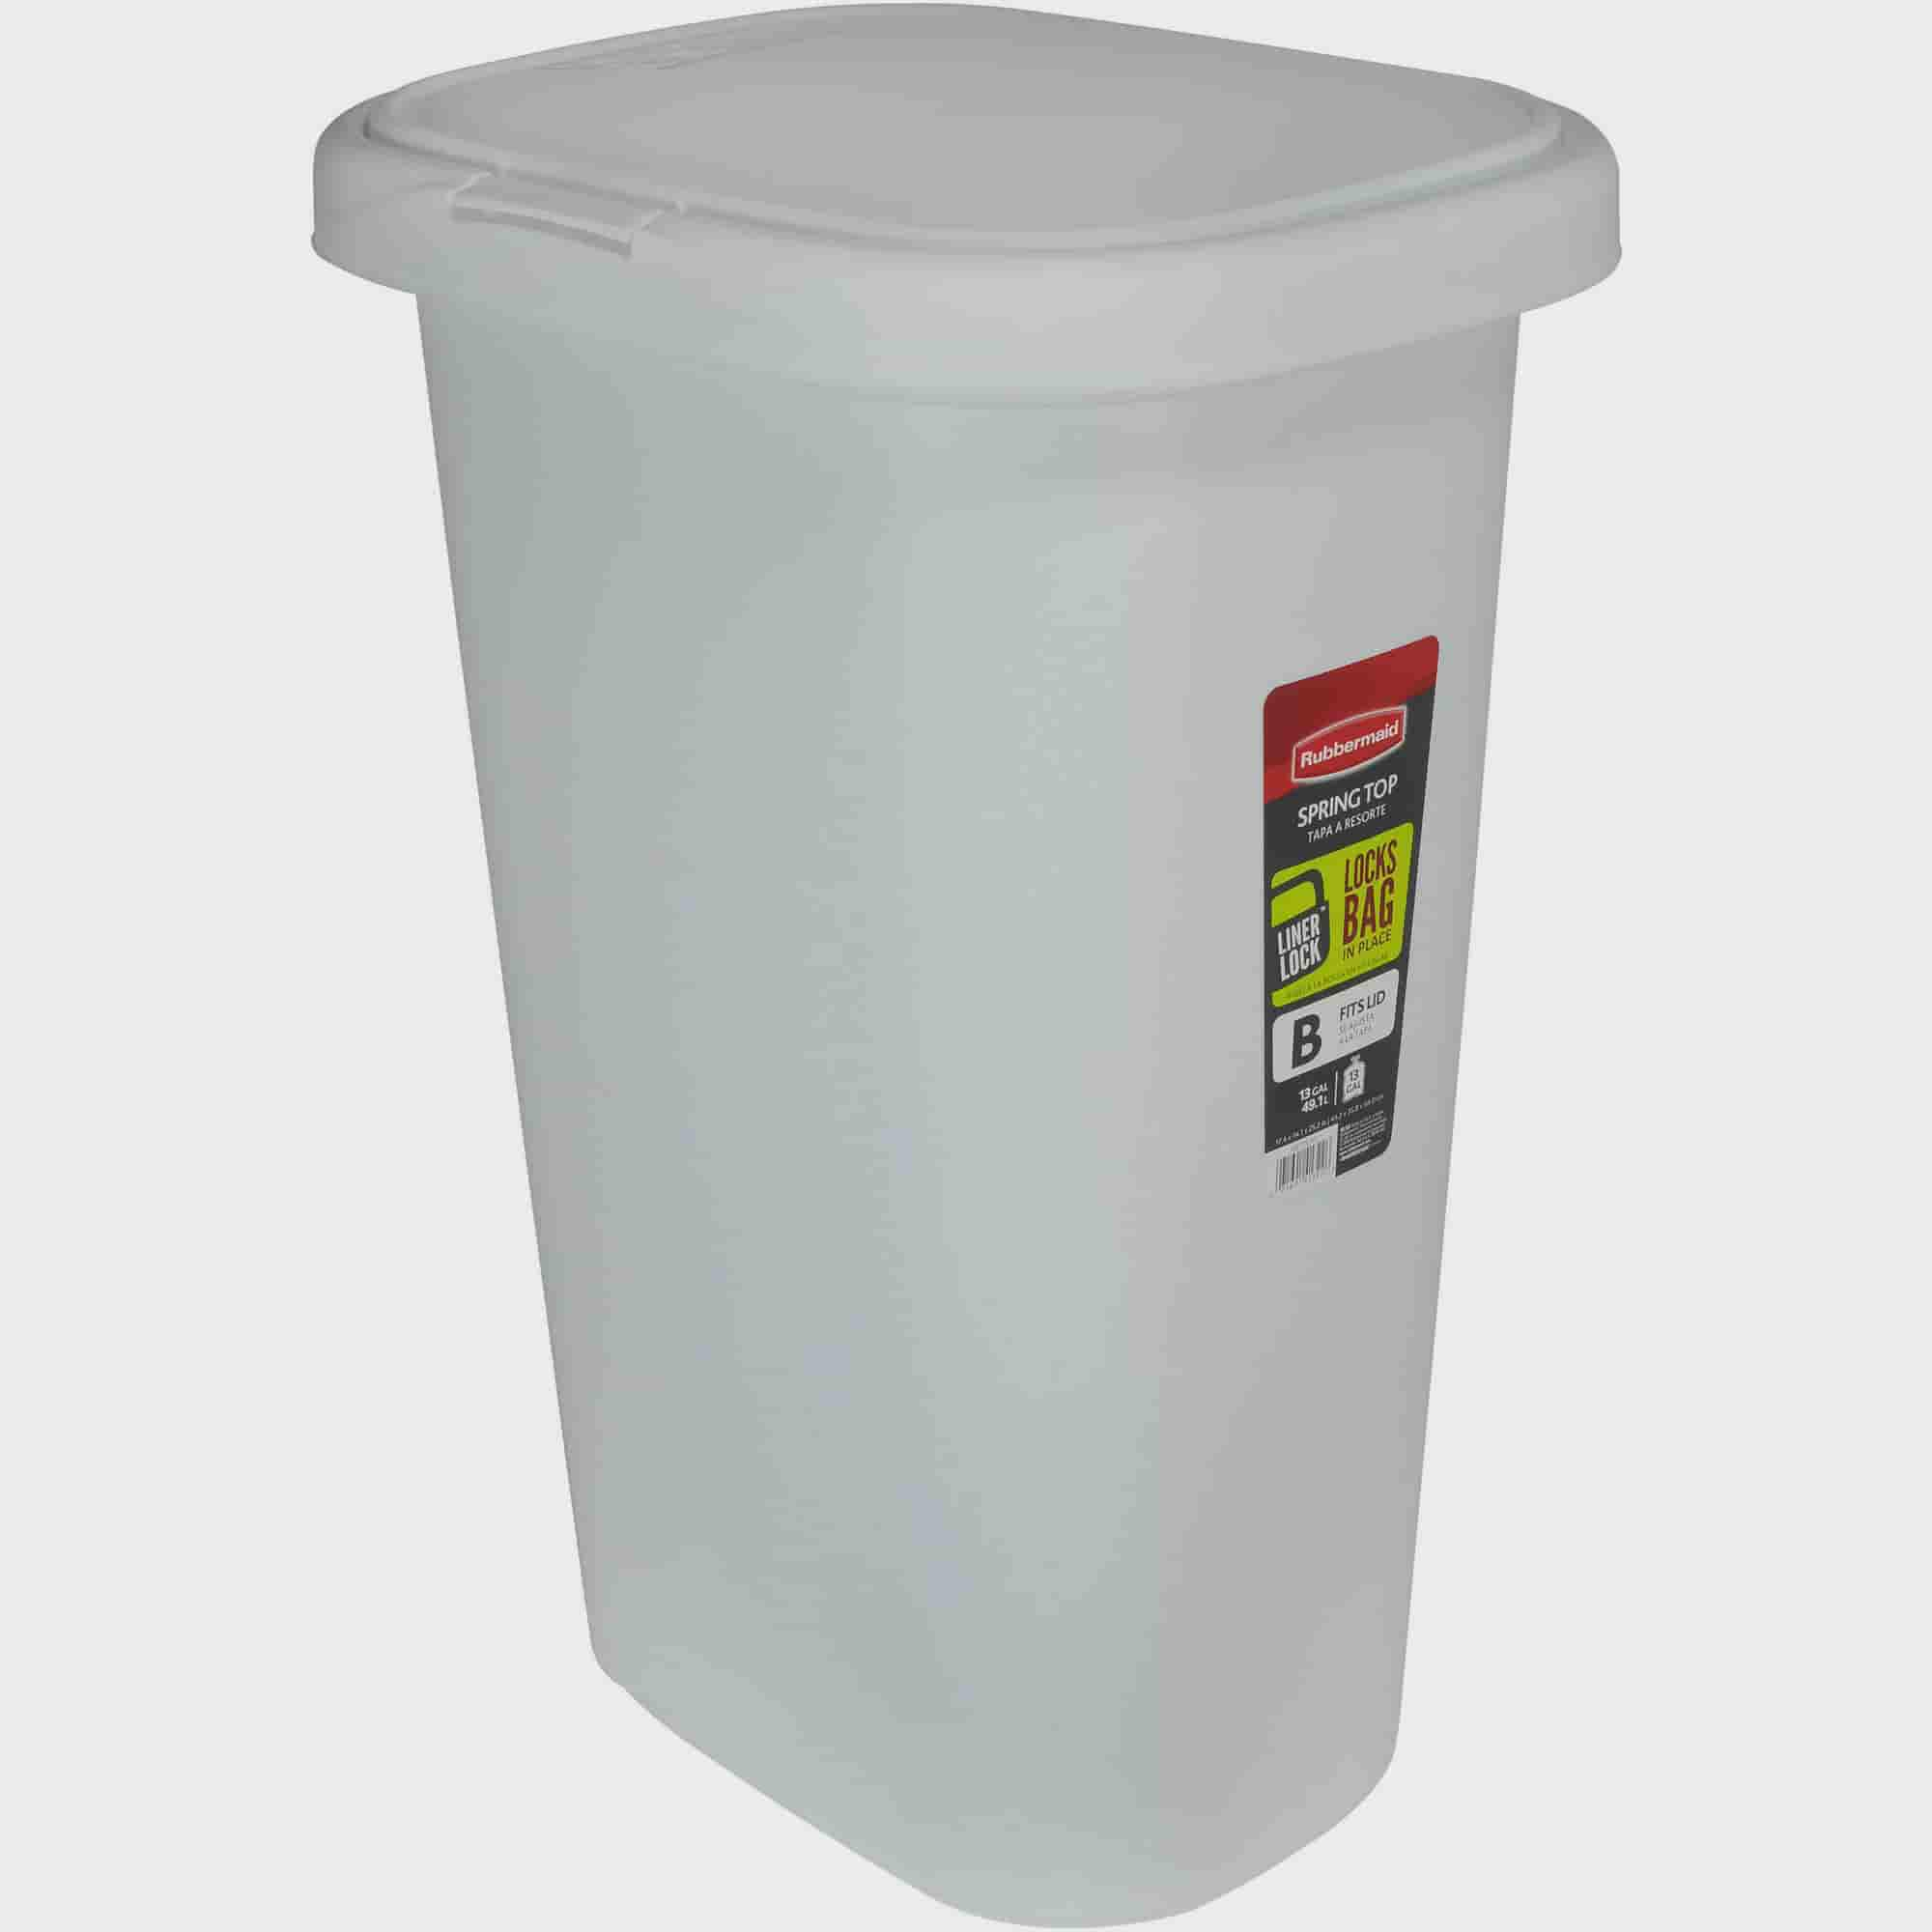 Rubbermaid Linerlock Spring Top Trash Can 13 Gal White Walmartcom